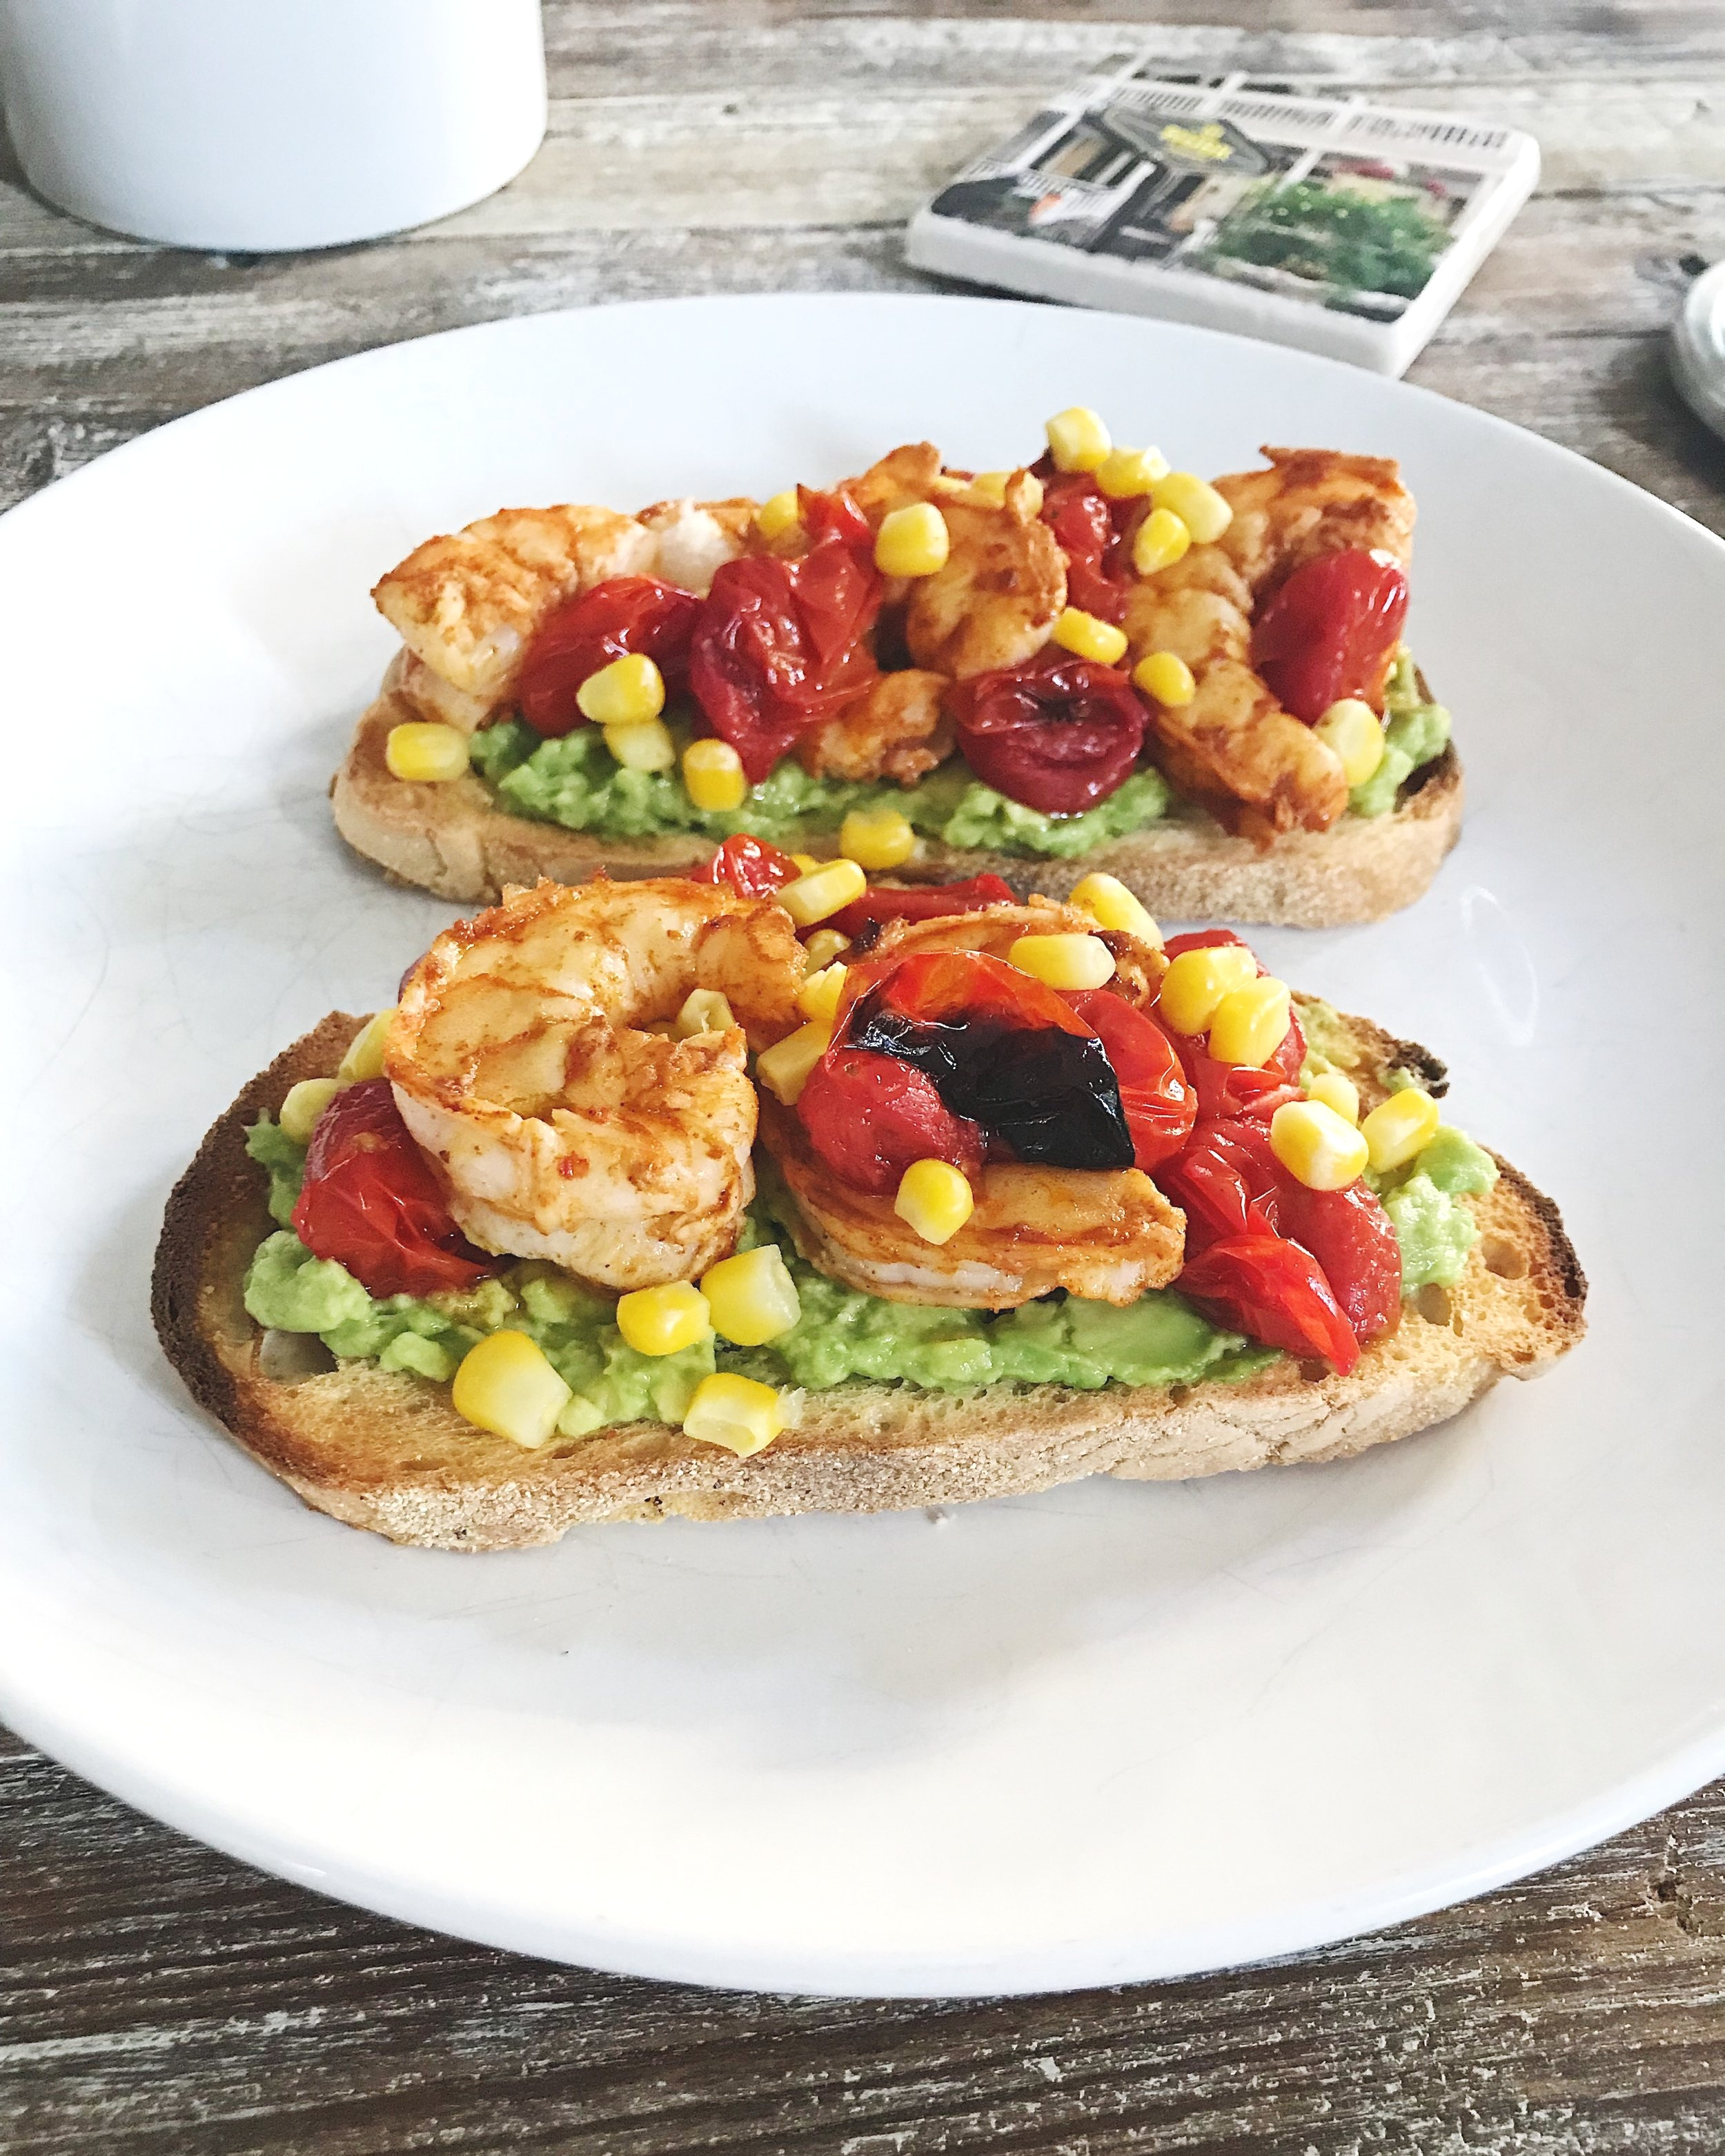 shrimp%2B%2526%2Bavocado%2Btoast%2Bside.jpg